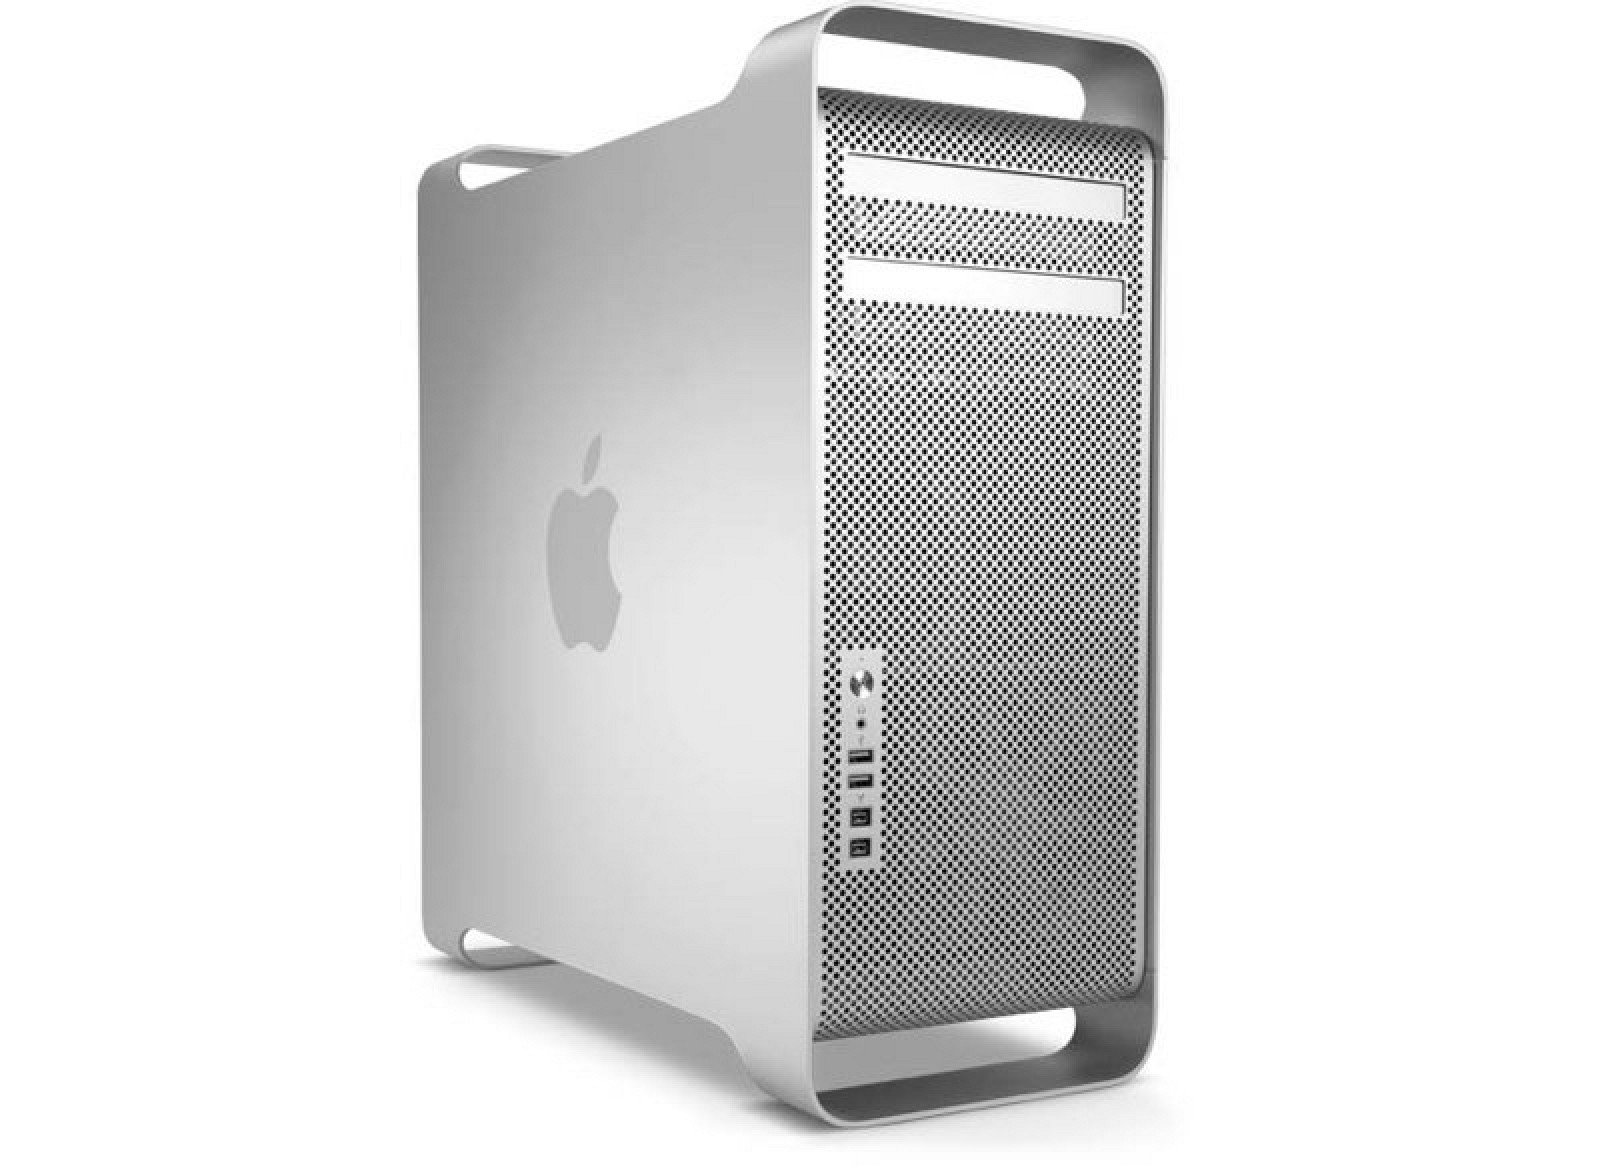 Apple Outlines Metal-Capable Cards Compatible With macOS Mojave on